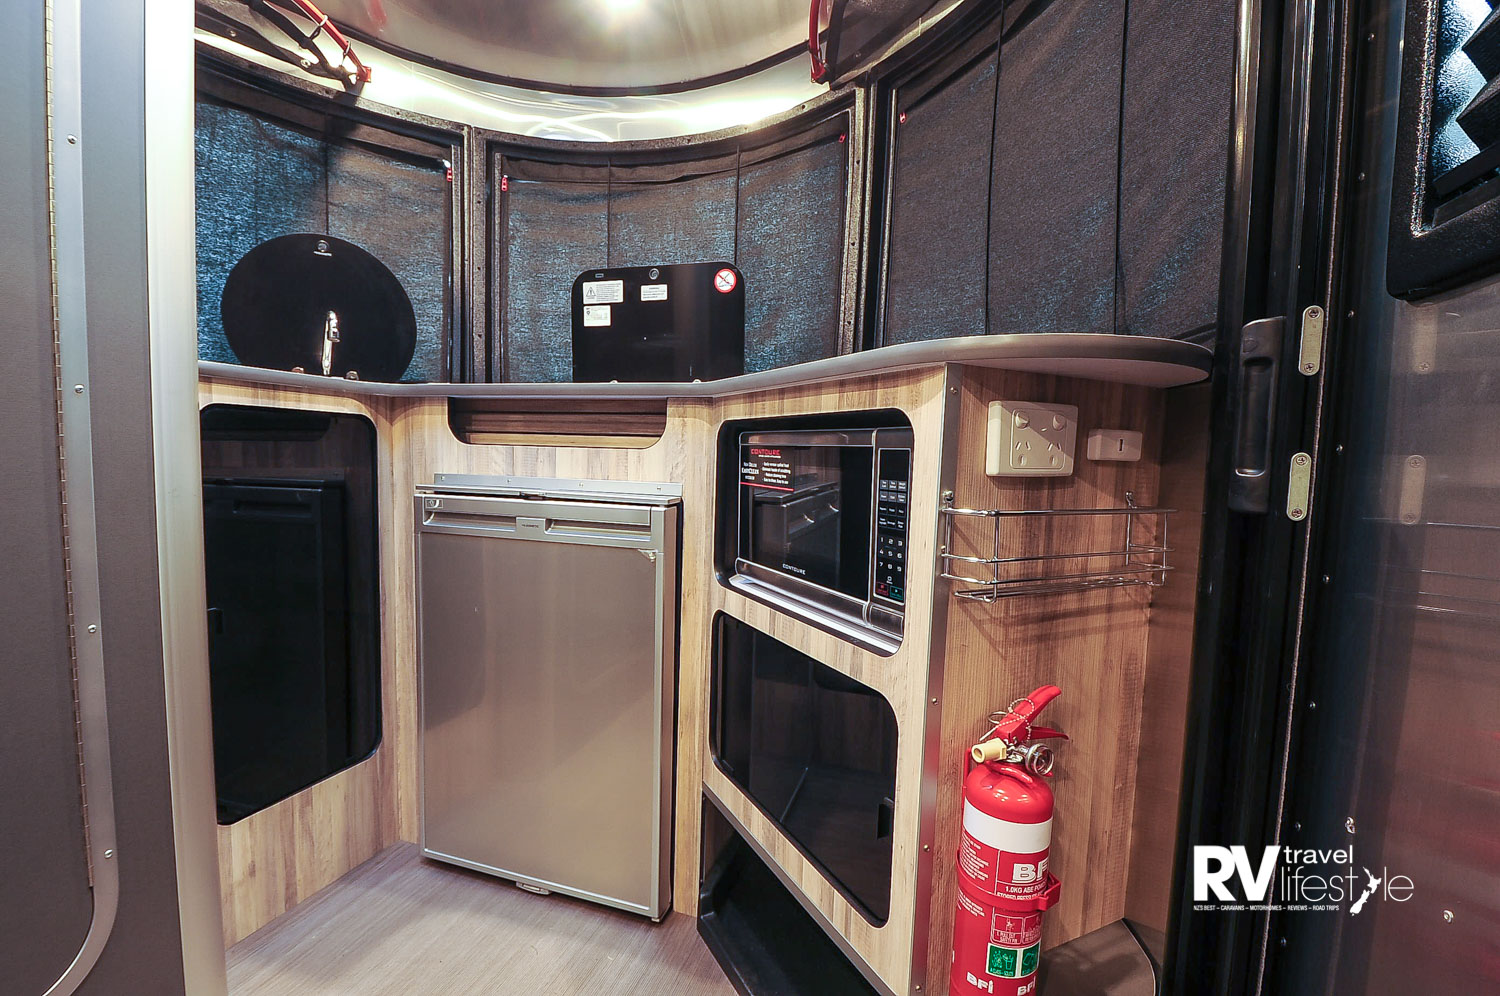 The kitchen in the nose has everything you need, microwave, fridge, two-burner gas hob, sink and storage areas